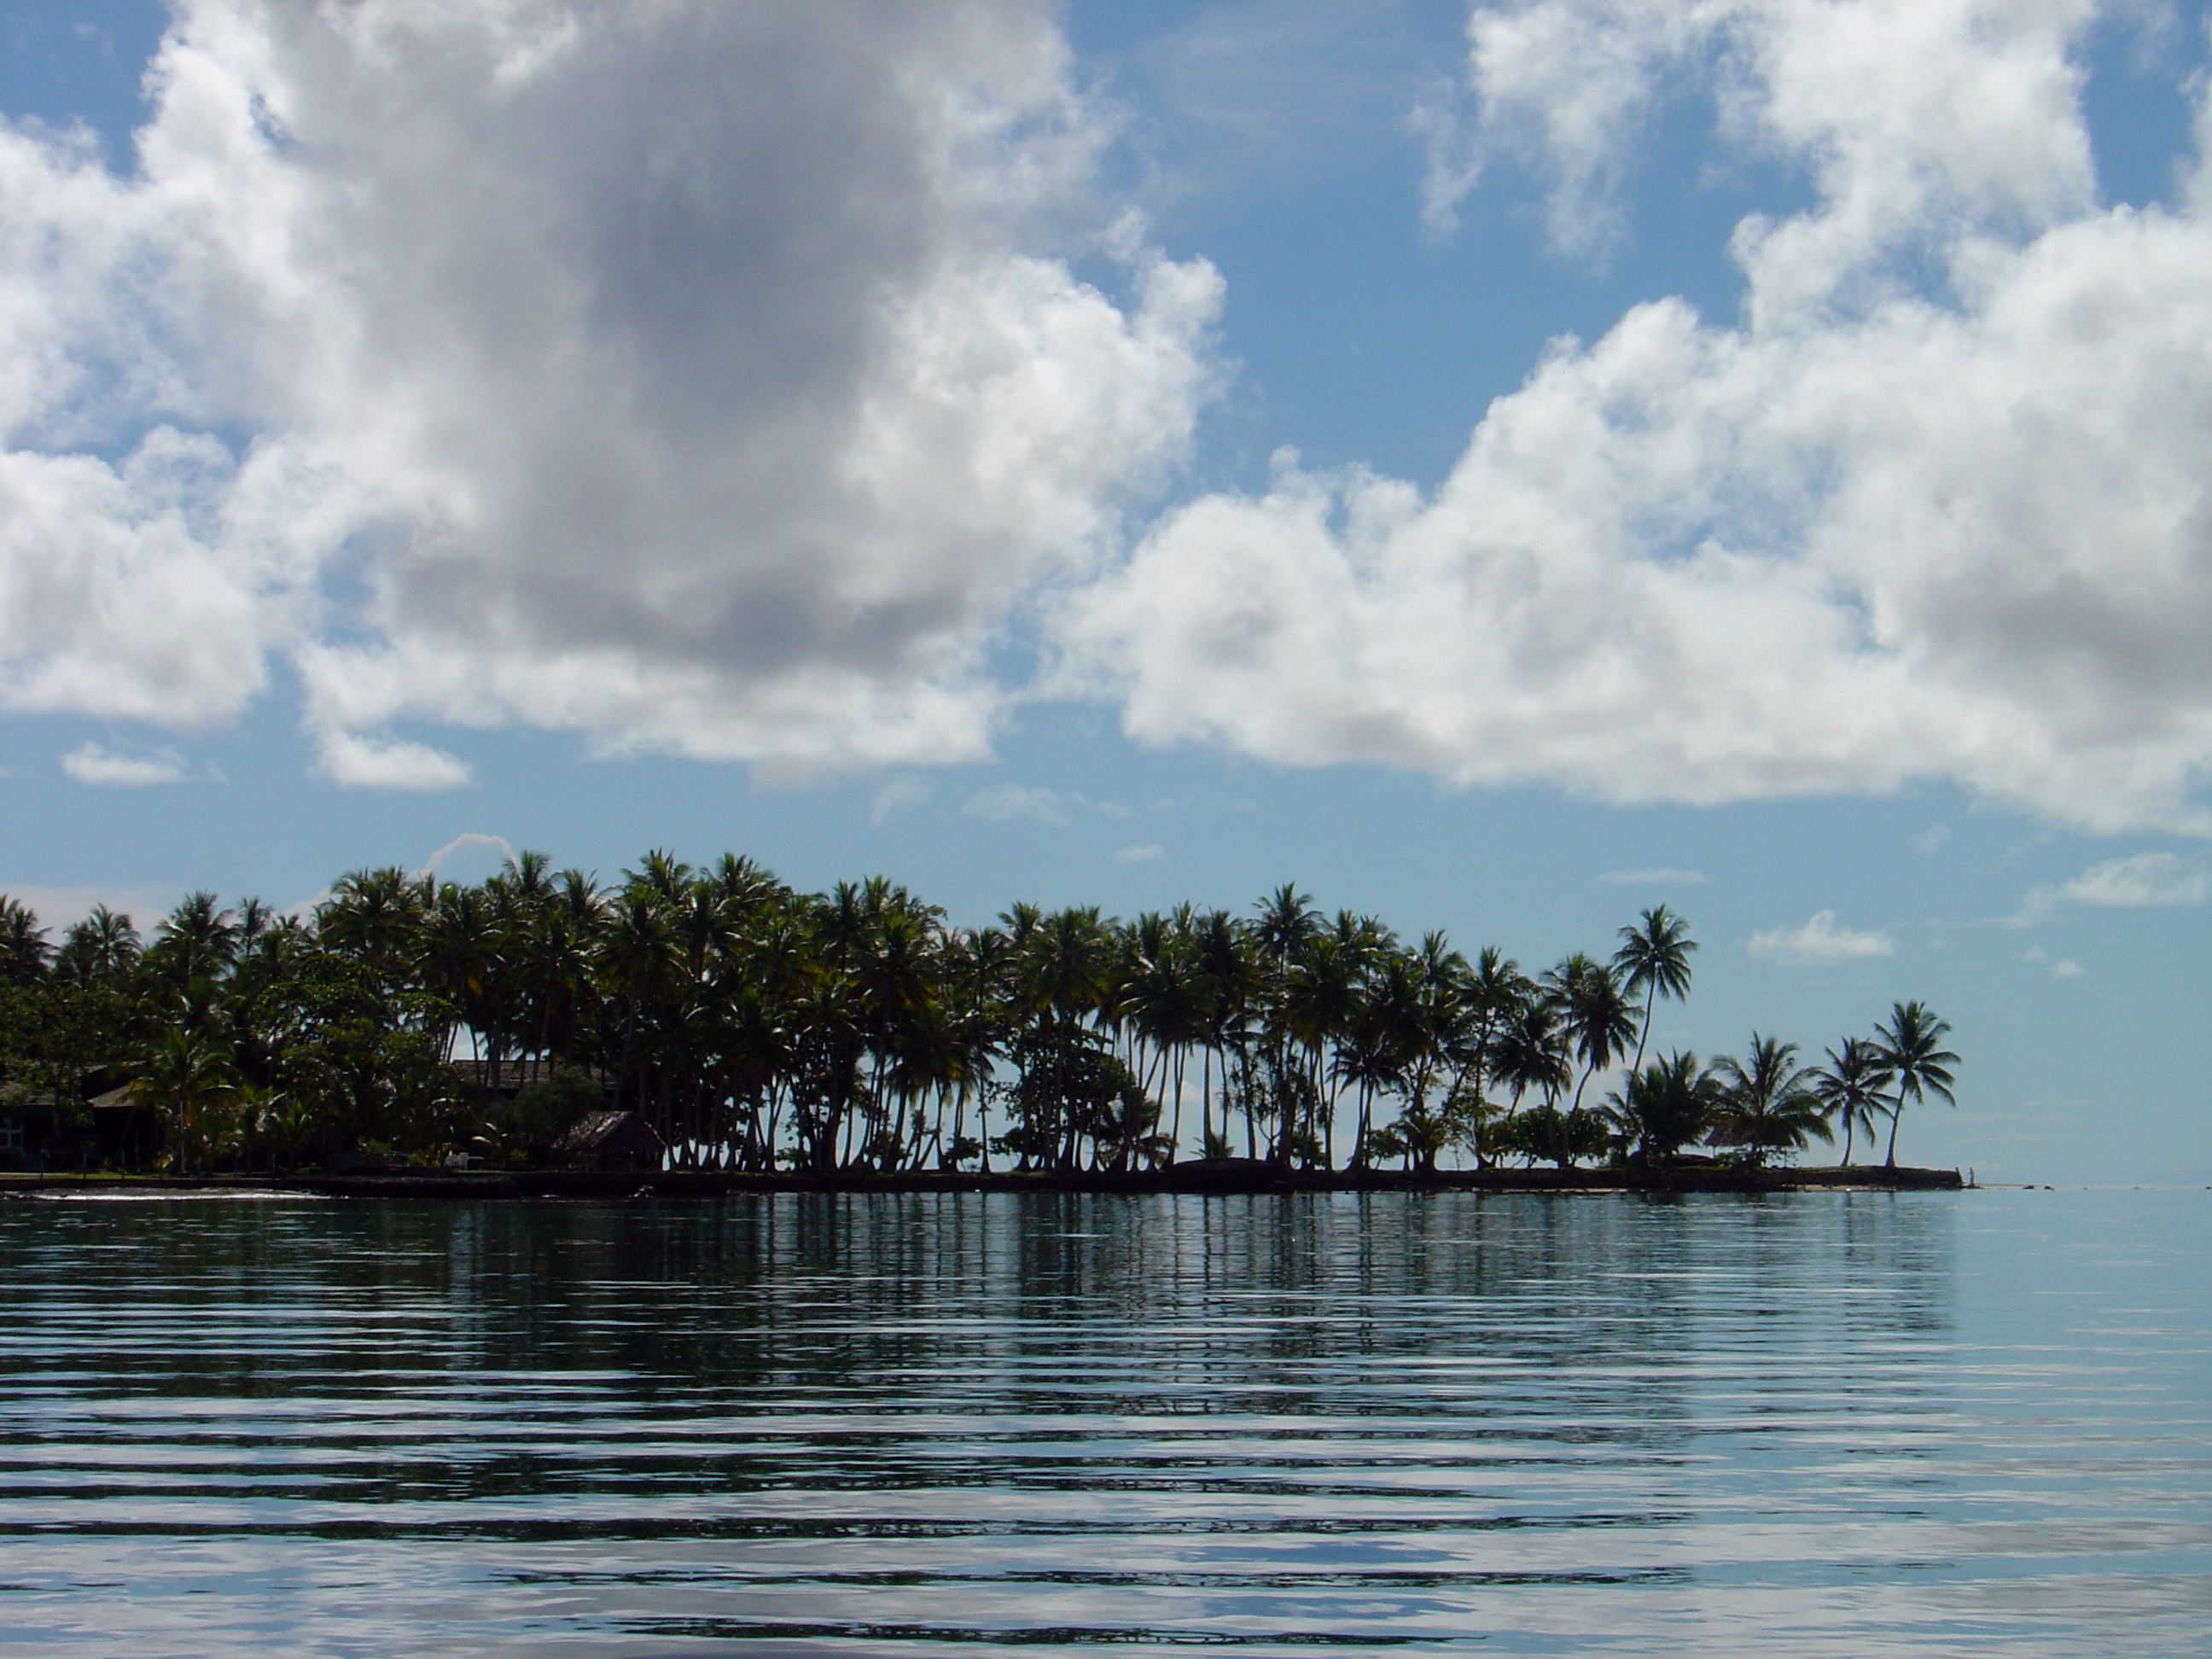 A peninsula on the island of Weno (Moen) in Chuuk, FSM